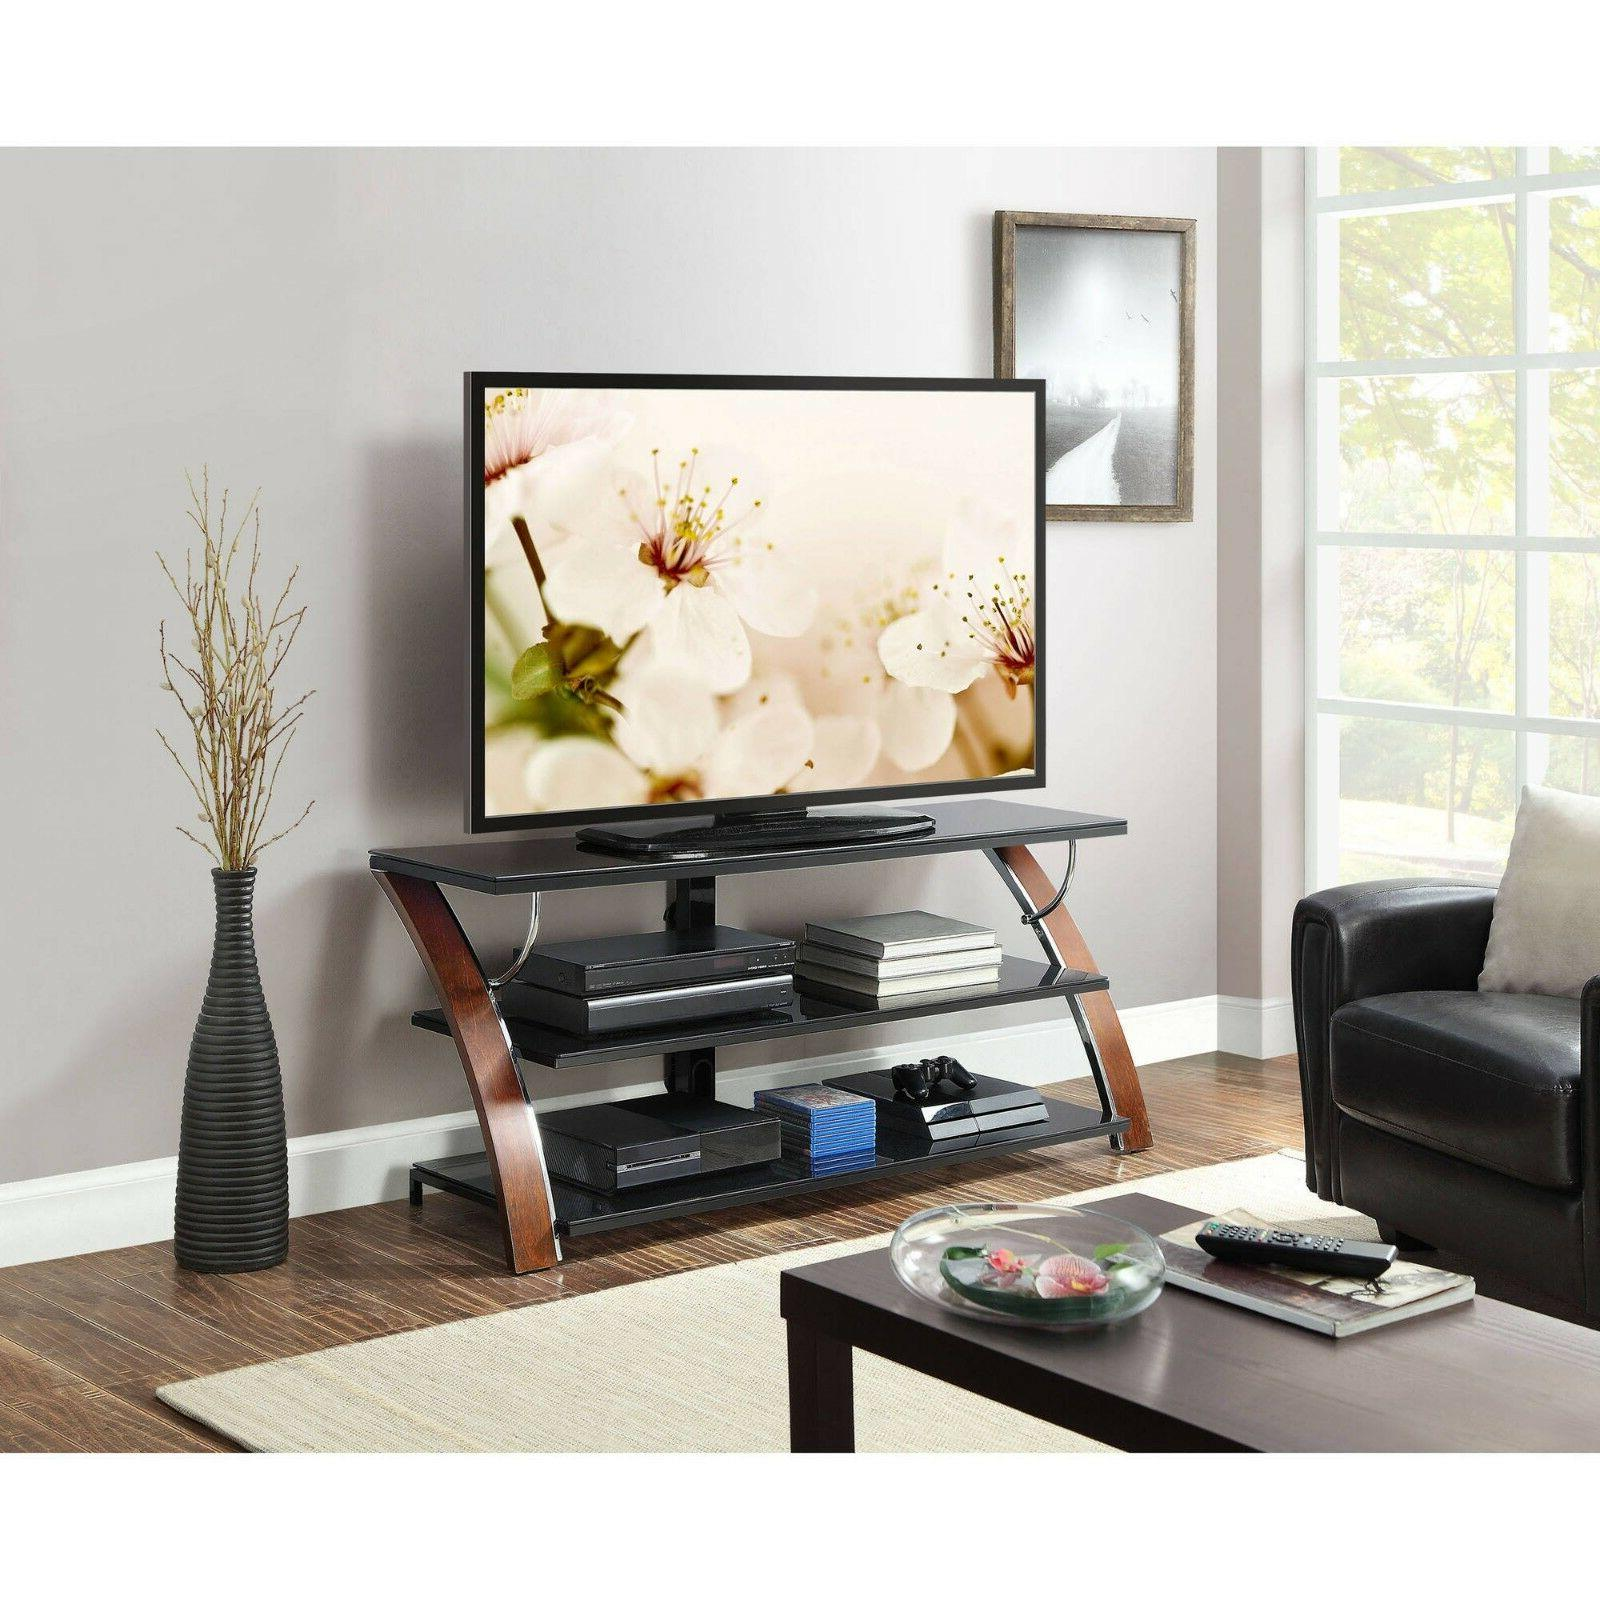 Tv Stand Media Entertainment Center up to 65 Inch Flat Scree